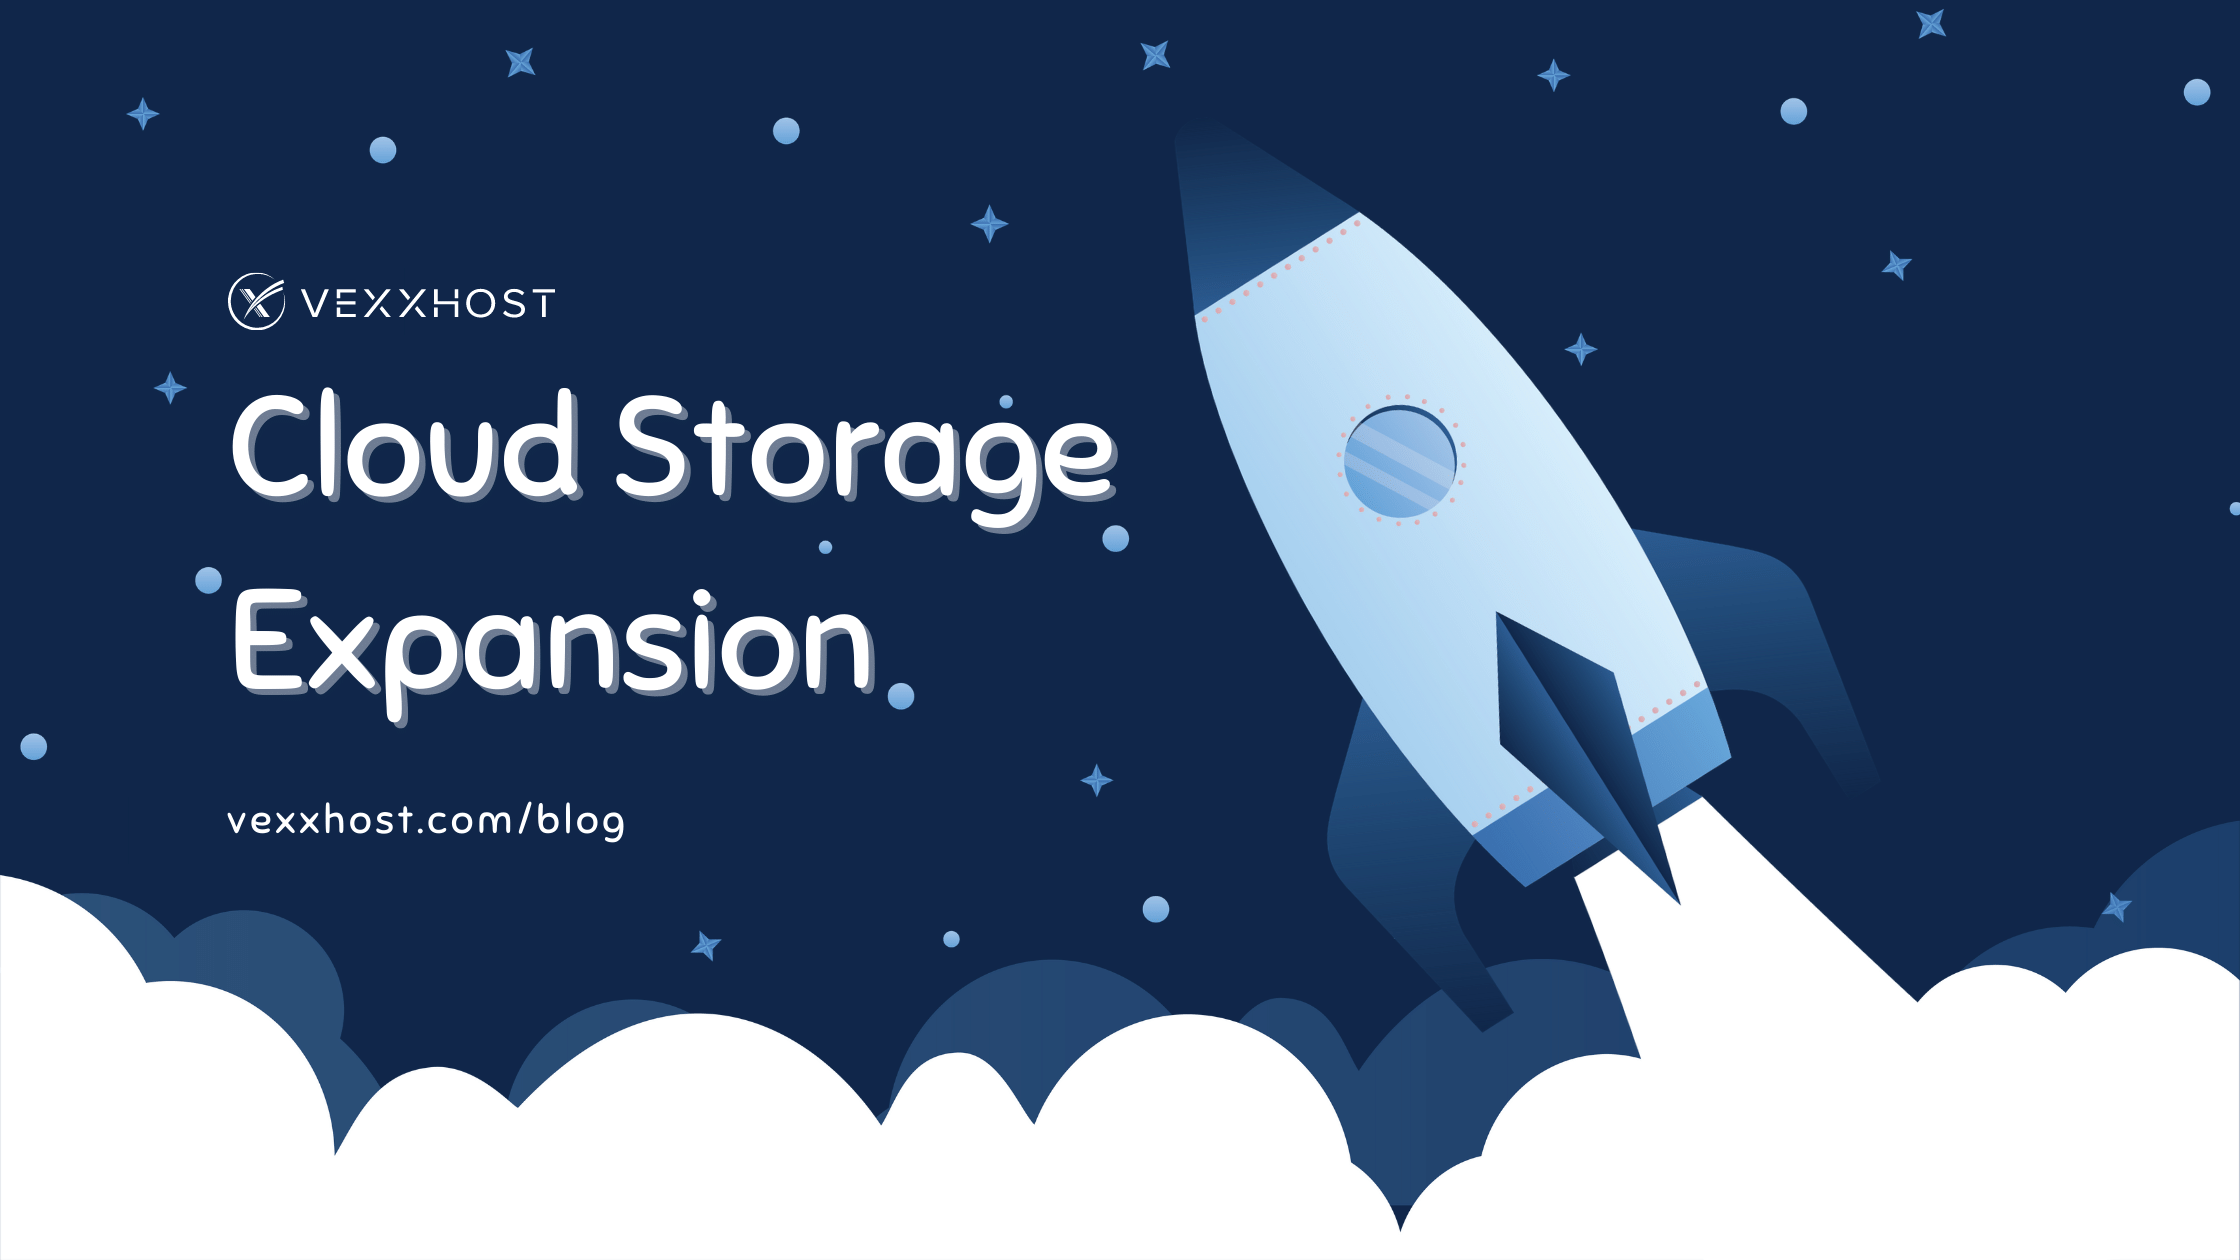 cloud-storage-growth-and-expansion-blog-header-illustration-vexxhost